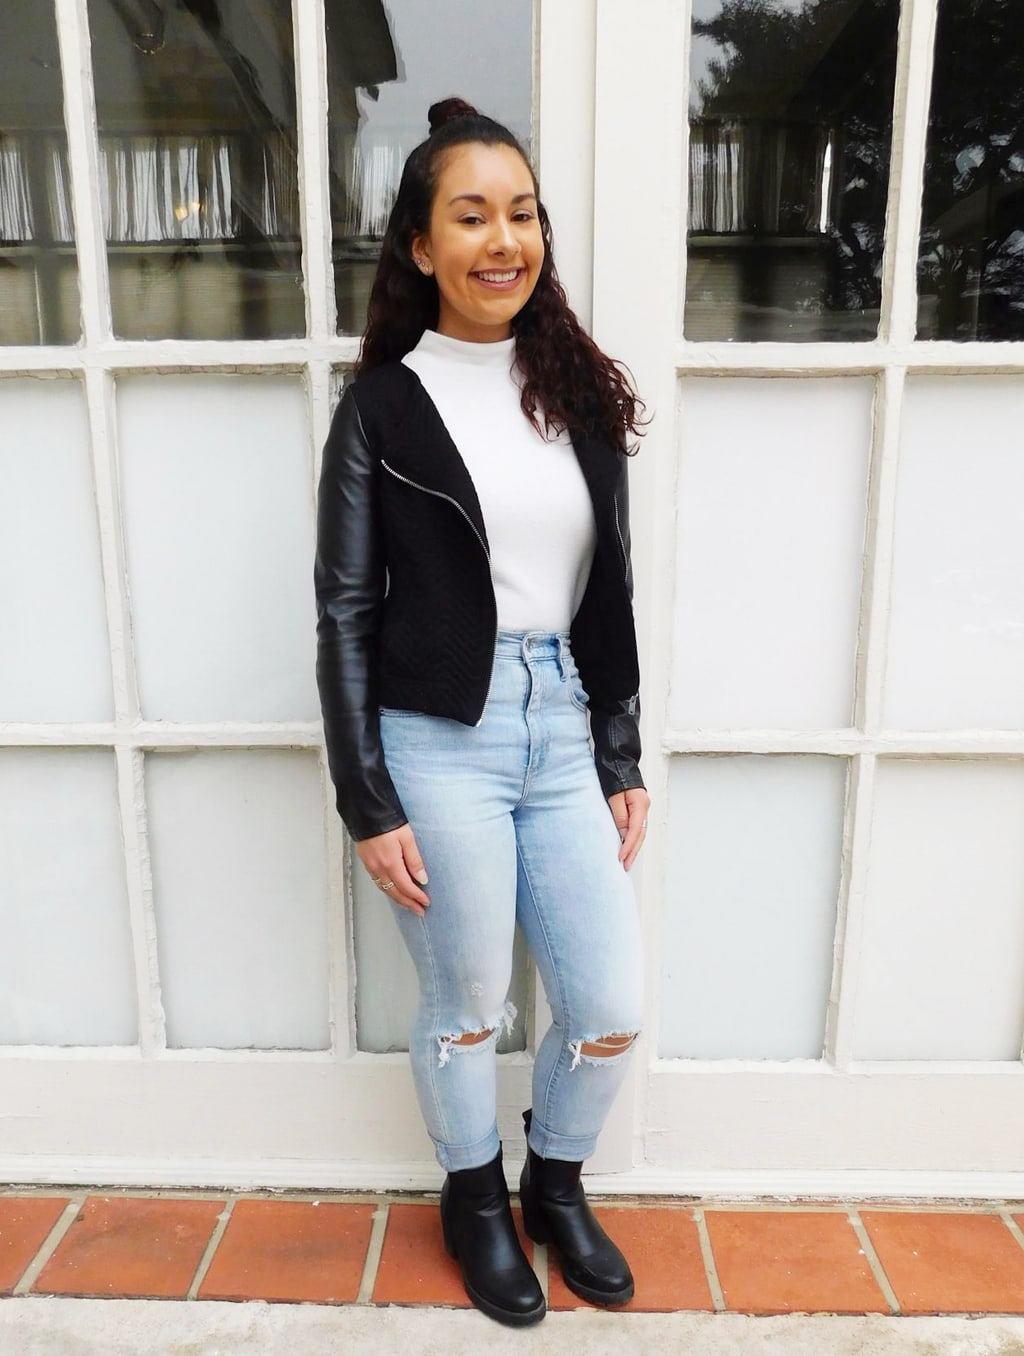 Jefferson University student Jackie styles her simple white turtleneck sweater with a black motorcycle jacket with silver zipper detailing, a pair of high-waisted light-wash denim jeans with distressed knees, and a pair of chunky-heeled booties.